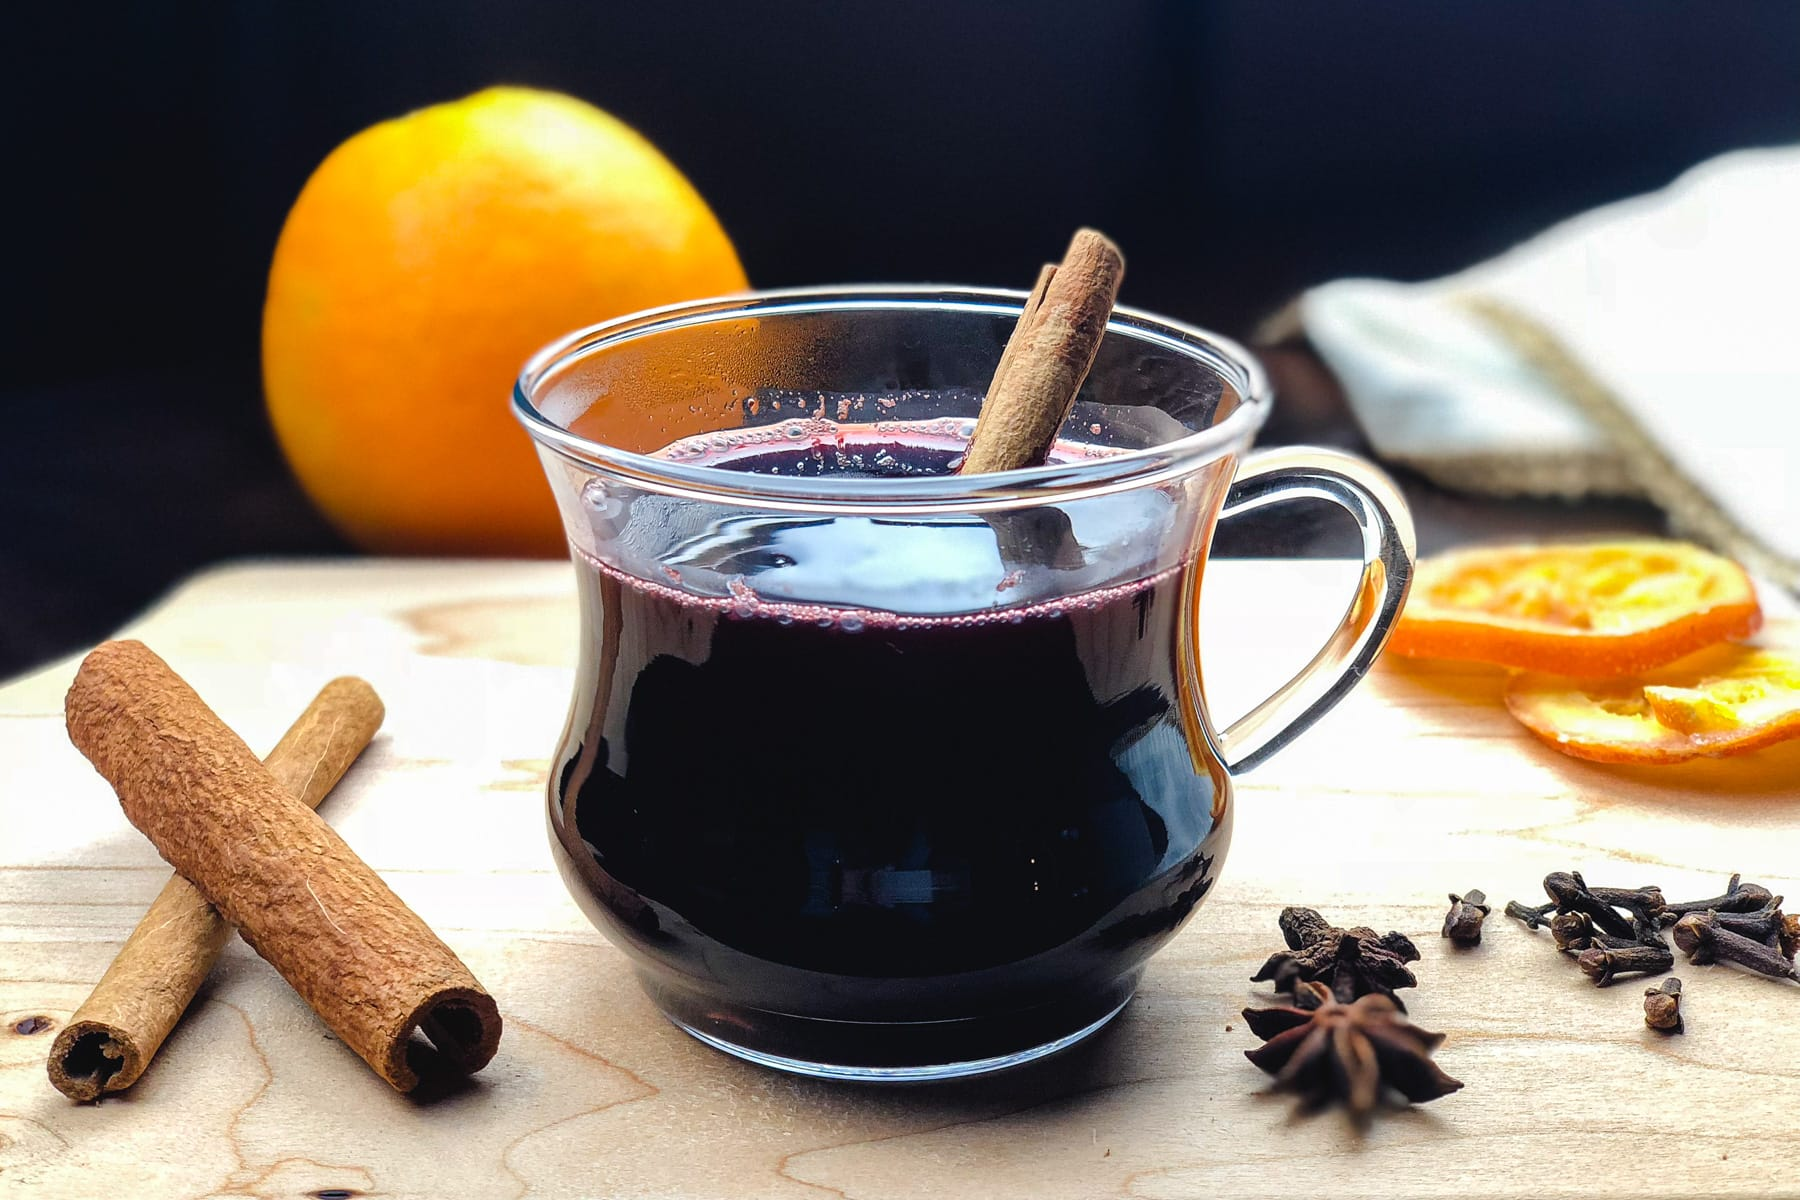 A cup of Mulled wine made in the Instant Pot